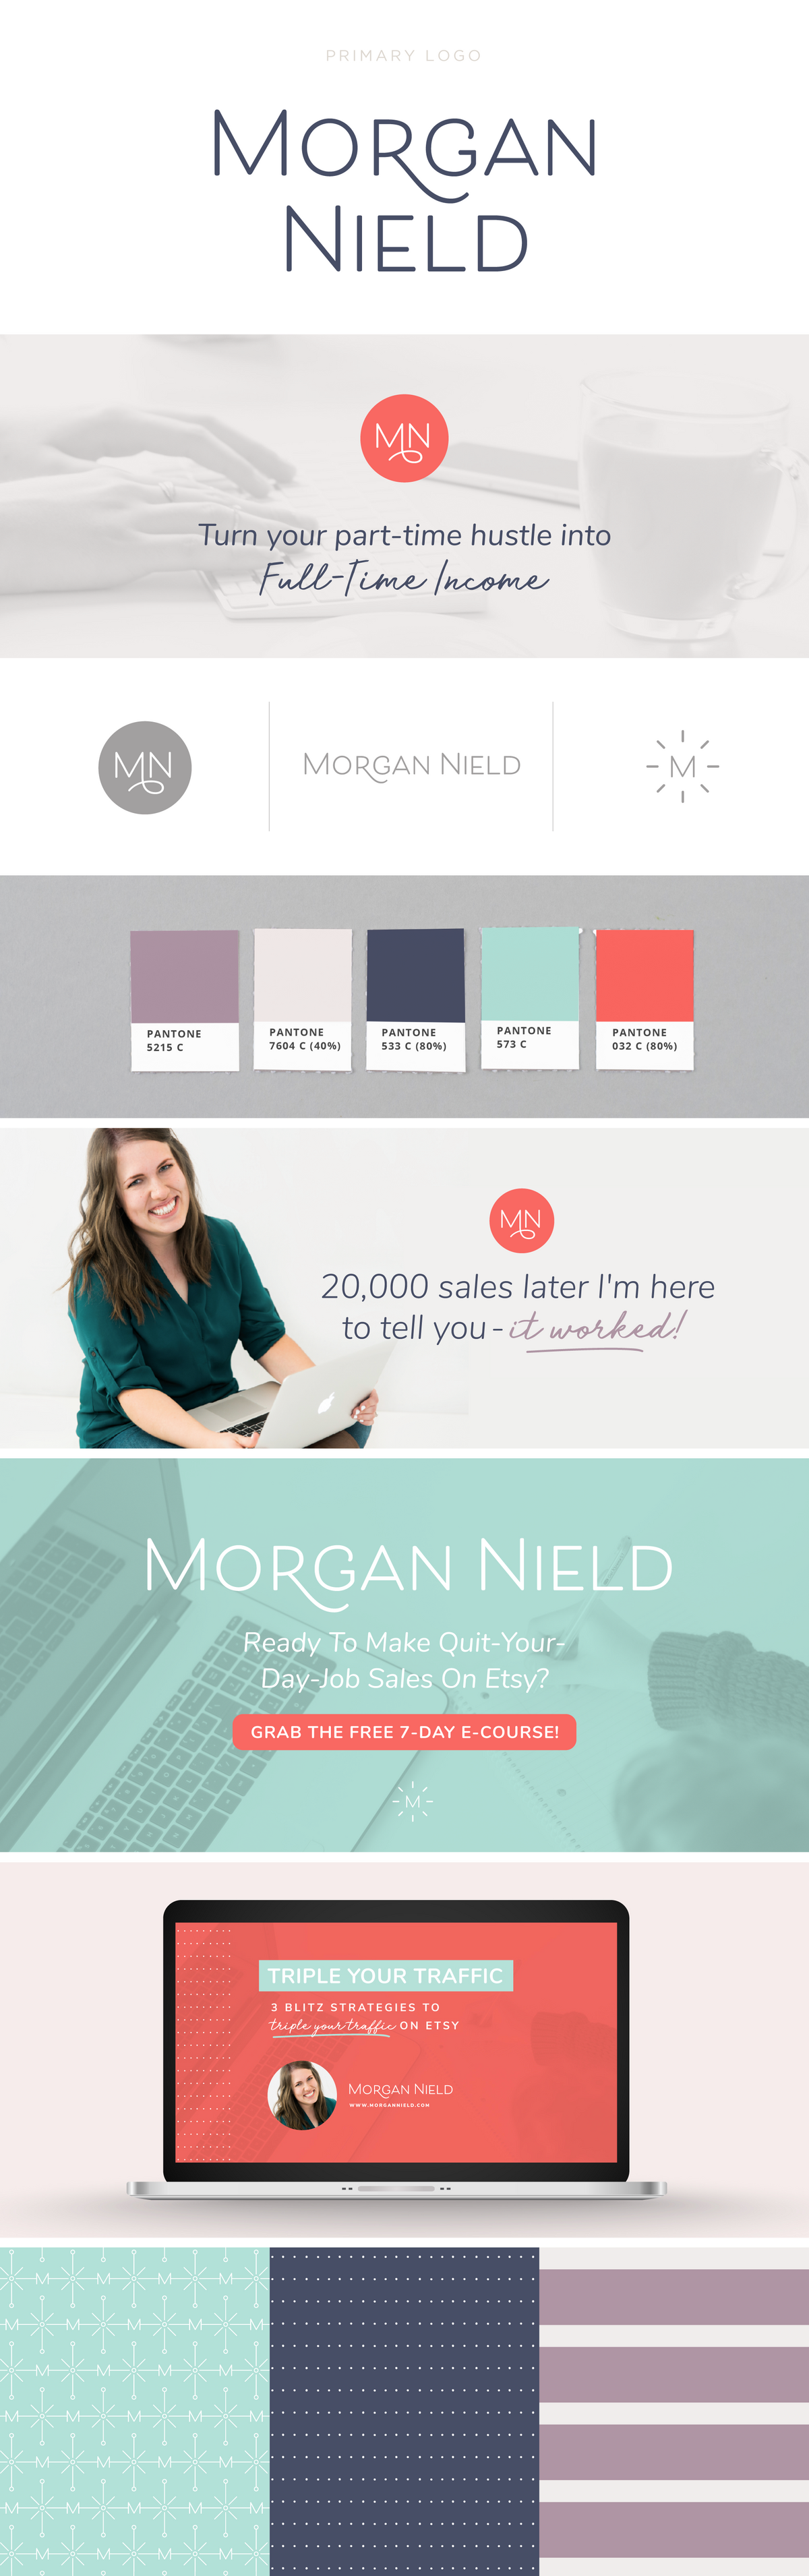 Morgan Nield brand design by Spruce Rd. in collaboration with Pace Creative Design Studio